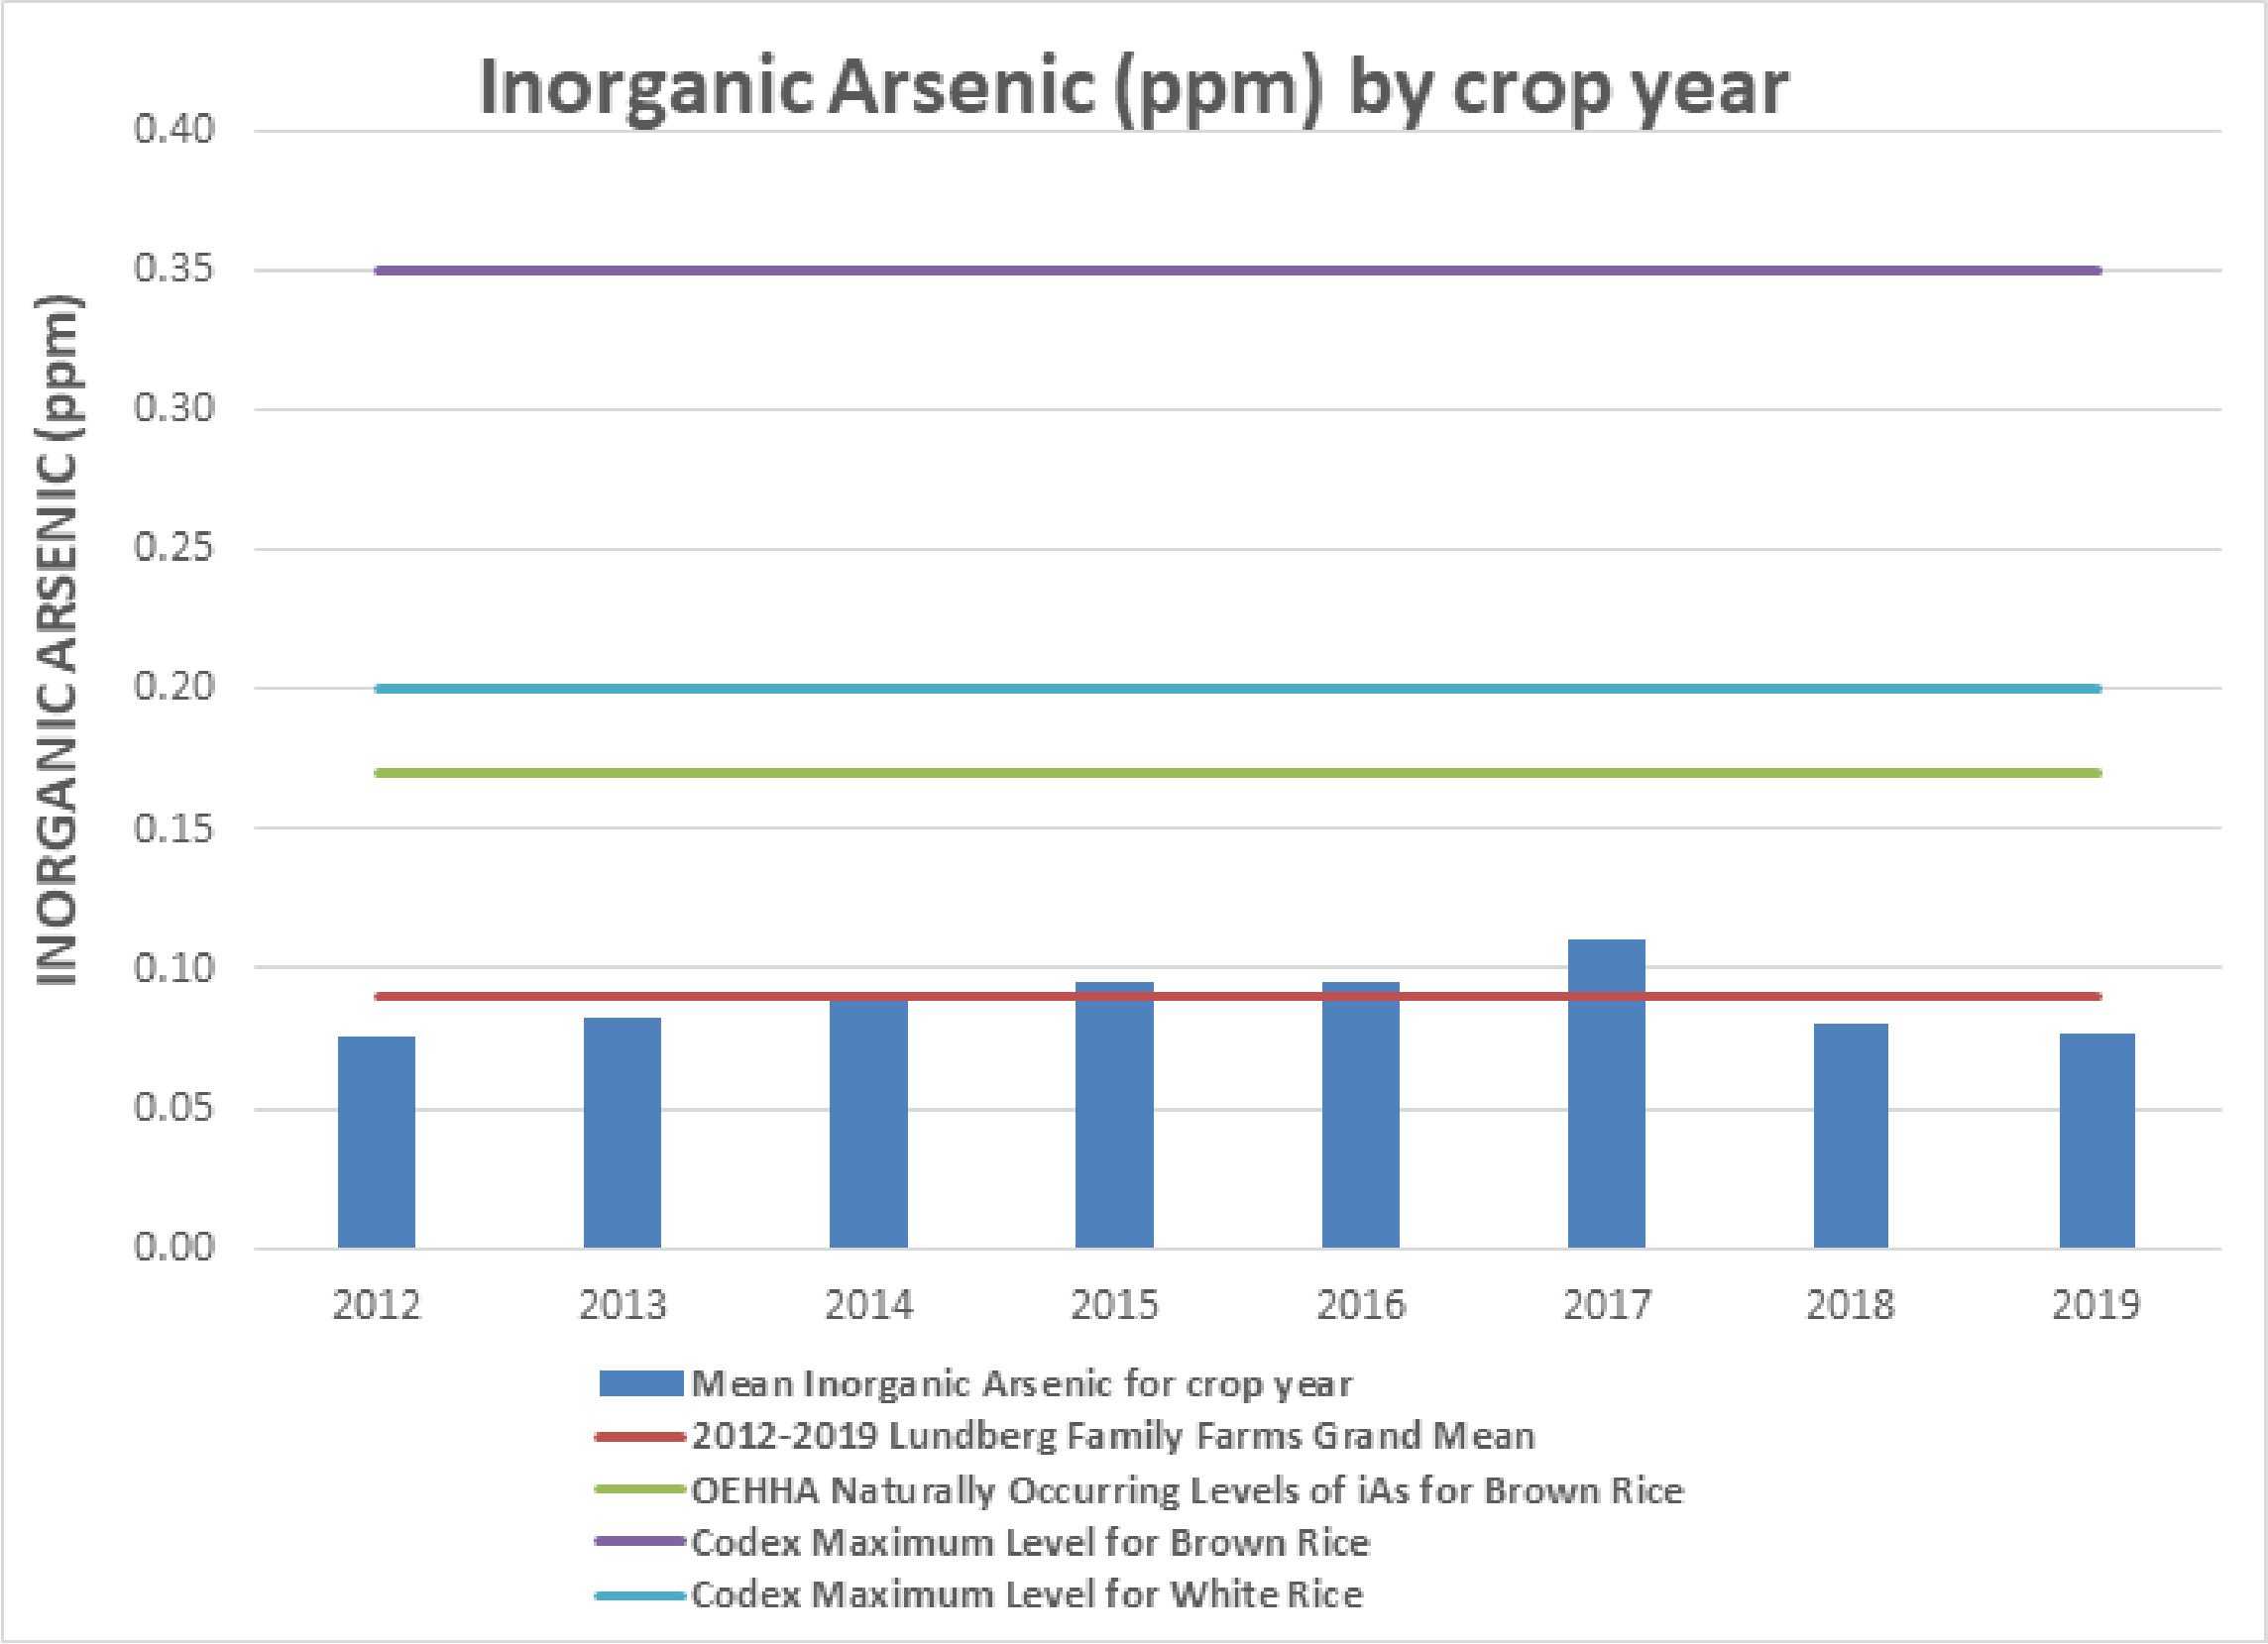 Inorganic Arsenic (ppm) by crop year